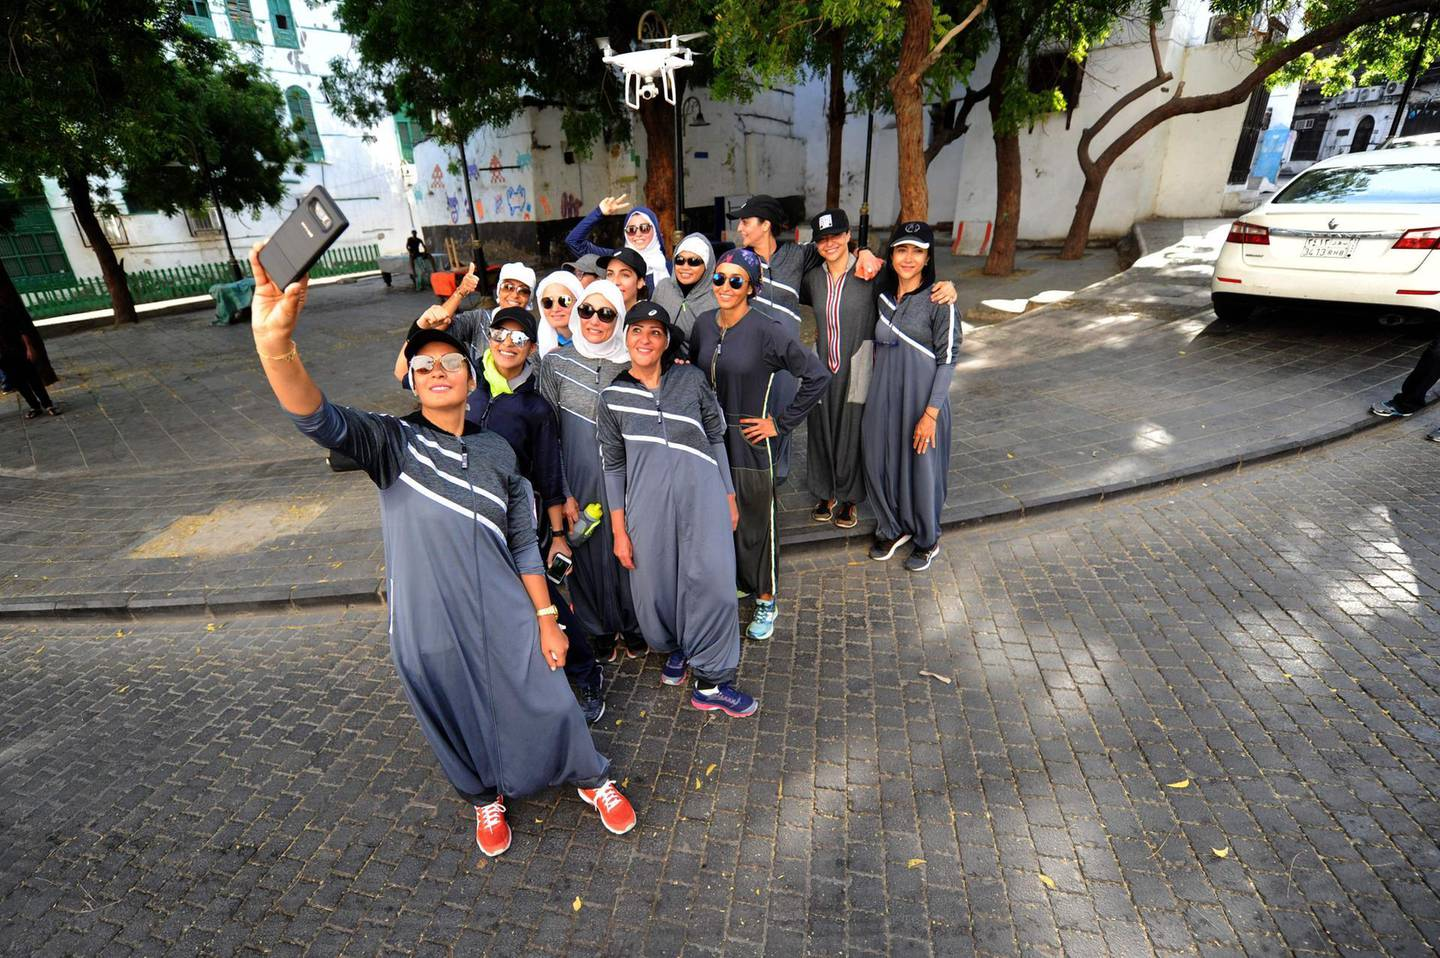 Saudi women pose for a selfie after a jog in the streets of Jeddah's historic al-Balad district on March 8, 2018. Colourful and oozing defiance, a sports-friendly version of the abaya gown was once considered a symbol of cultural rebellion in conservative Saudi Arabia, but it is fast becoming the new normal. / AFP PHOTO / Amer HILABI